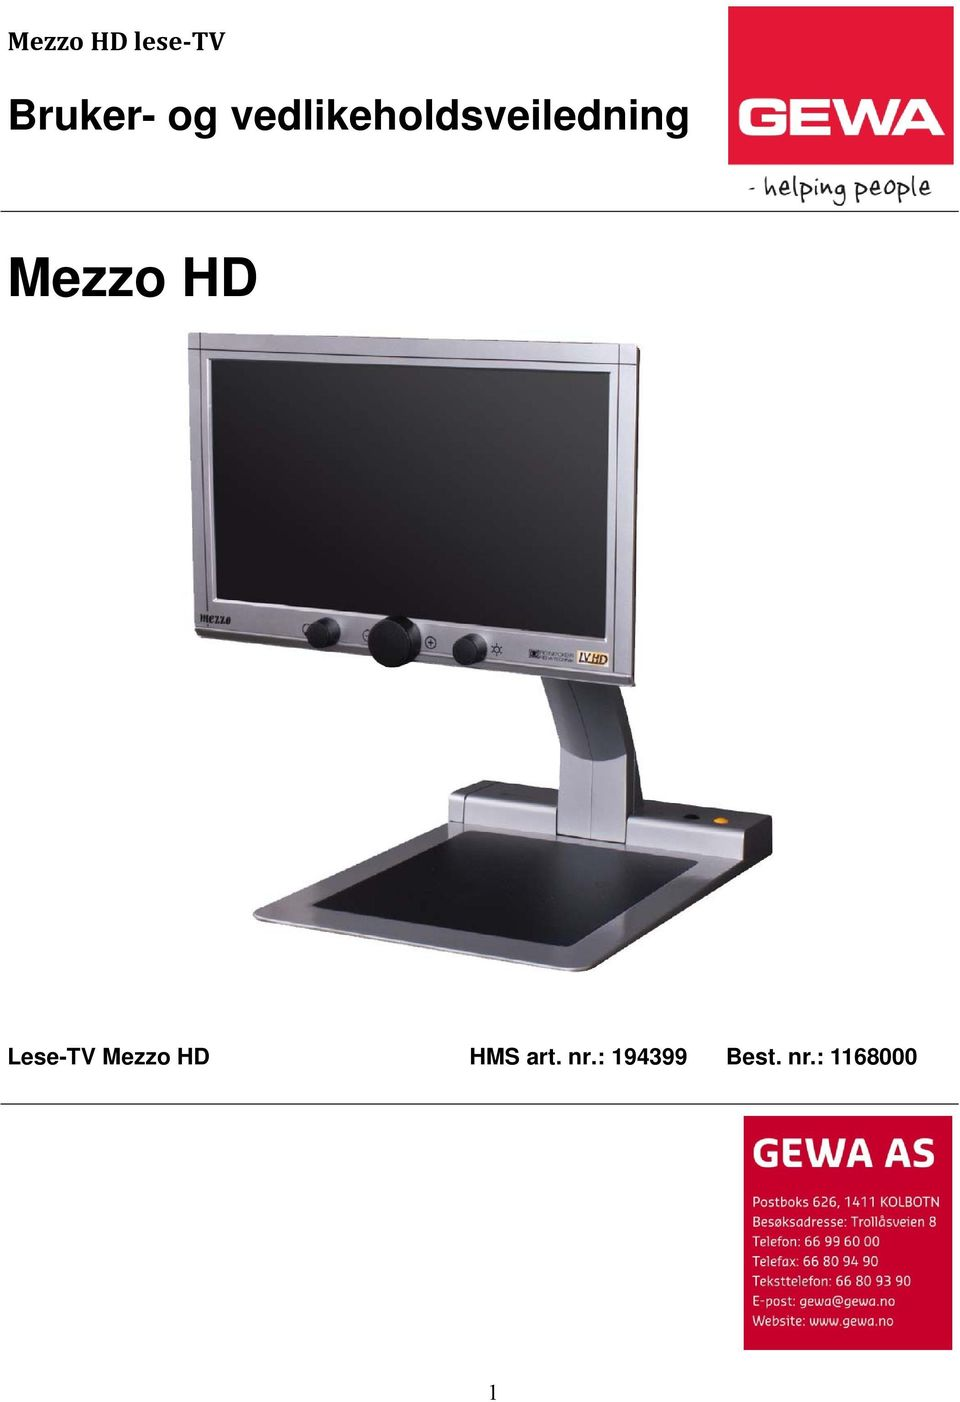 HD Lese-TV Mezzo HD HMS art.